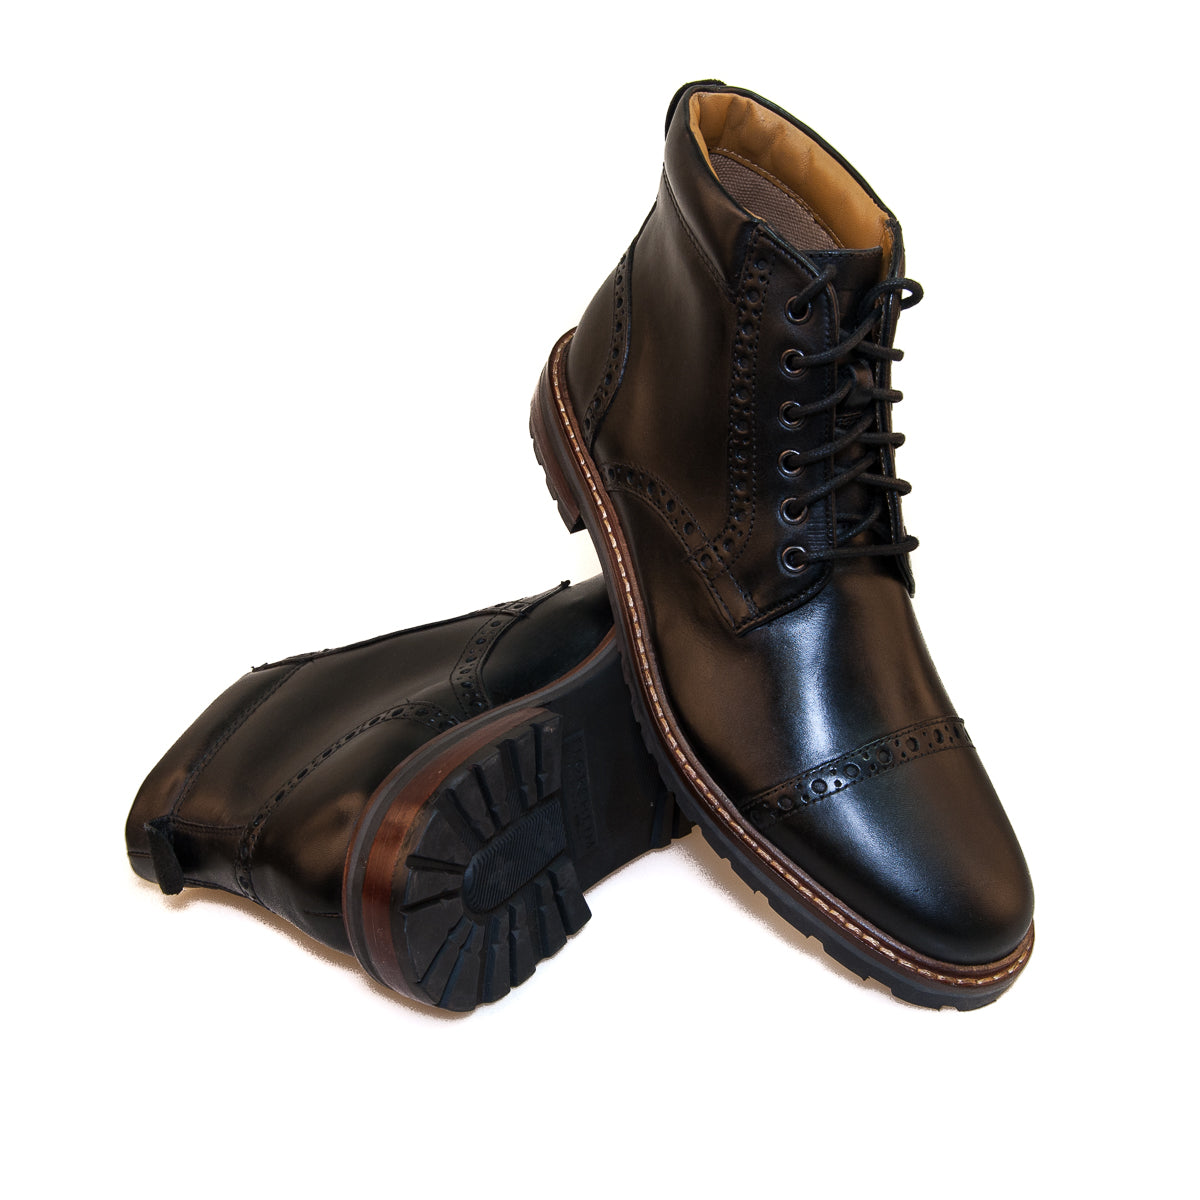 FLORSHEIM 14196 ESTABROOK